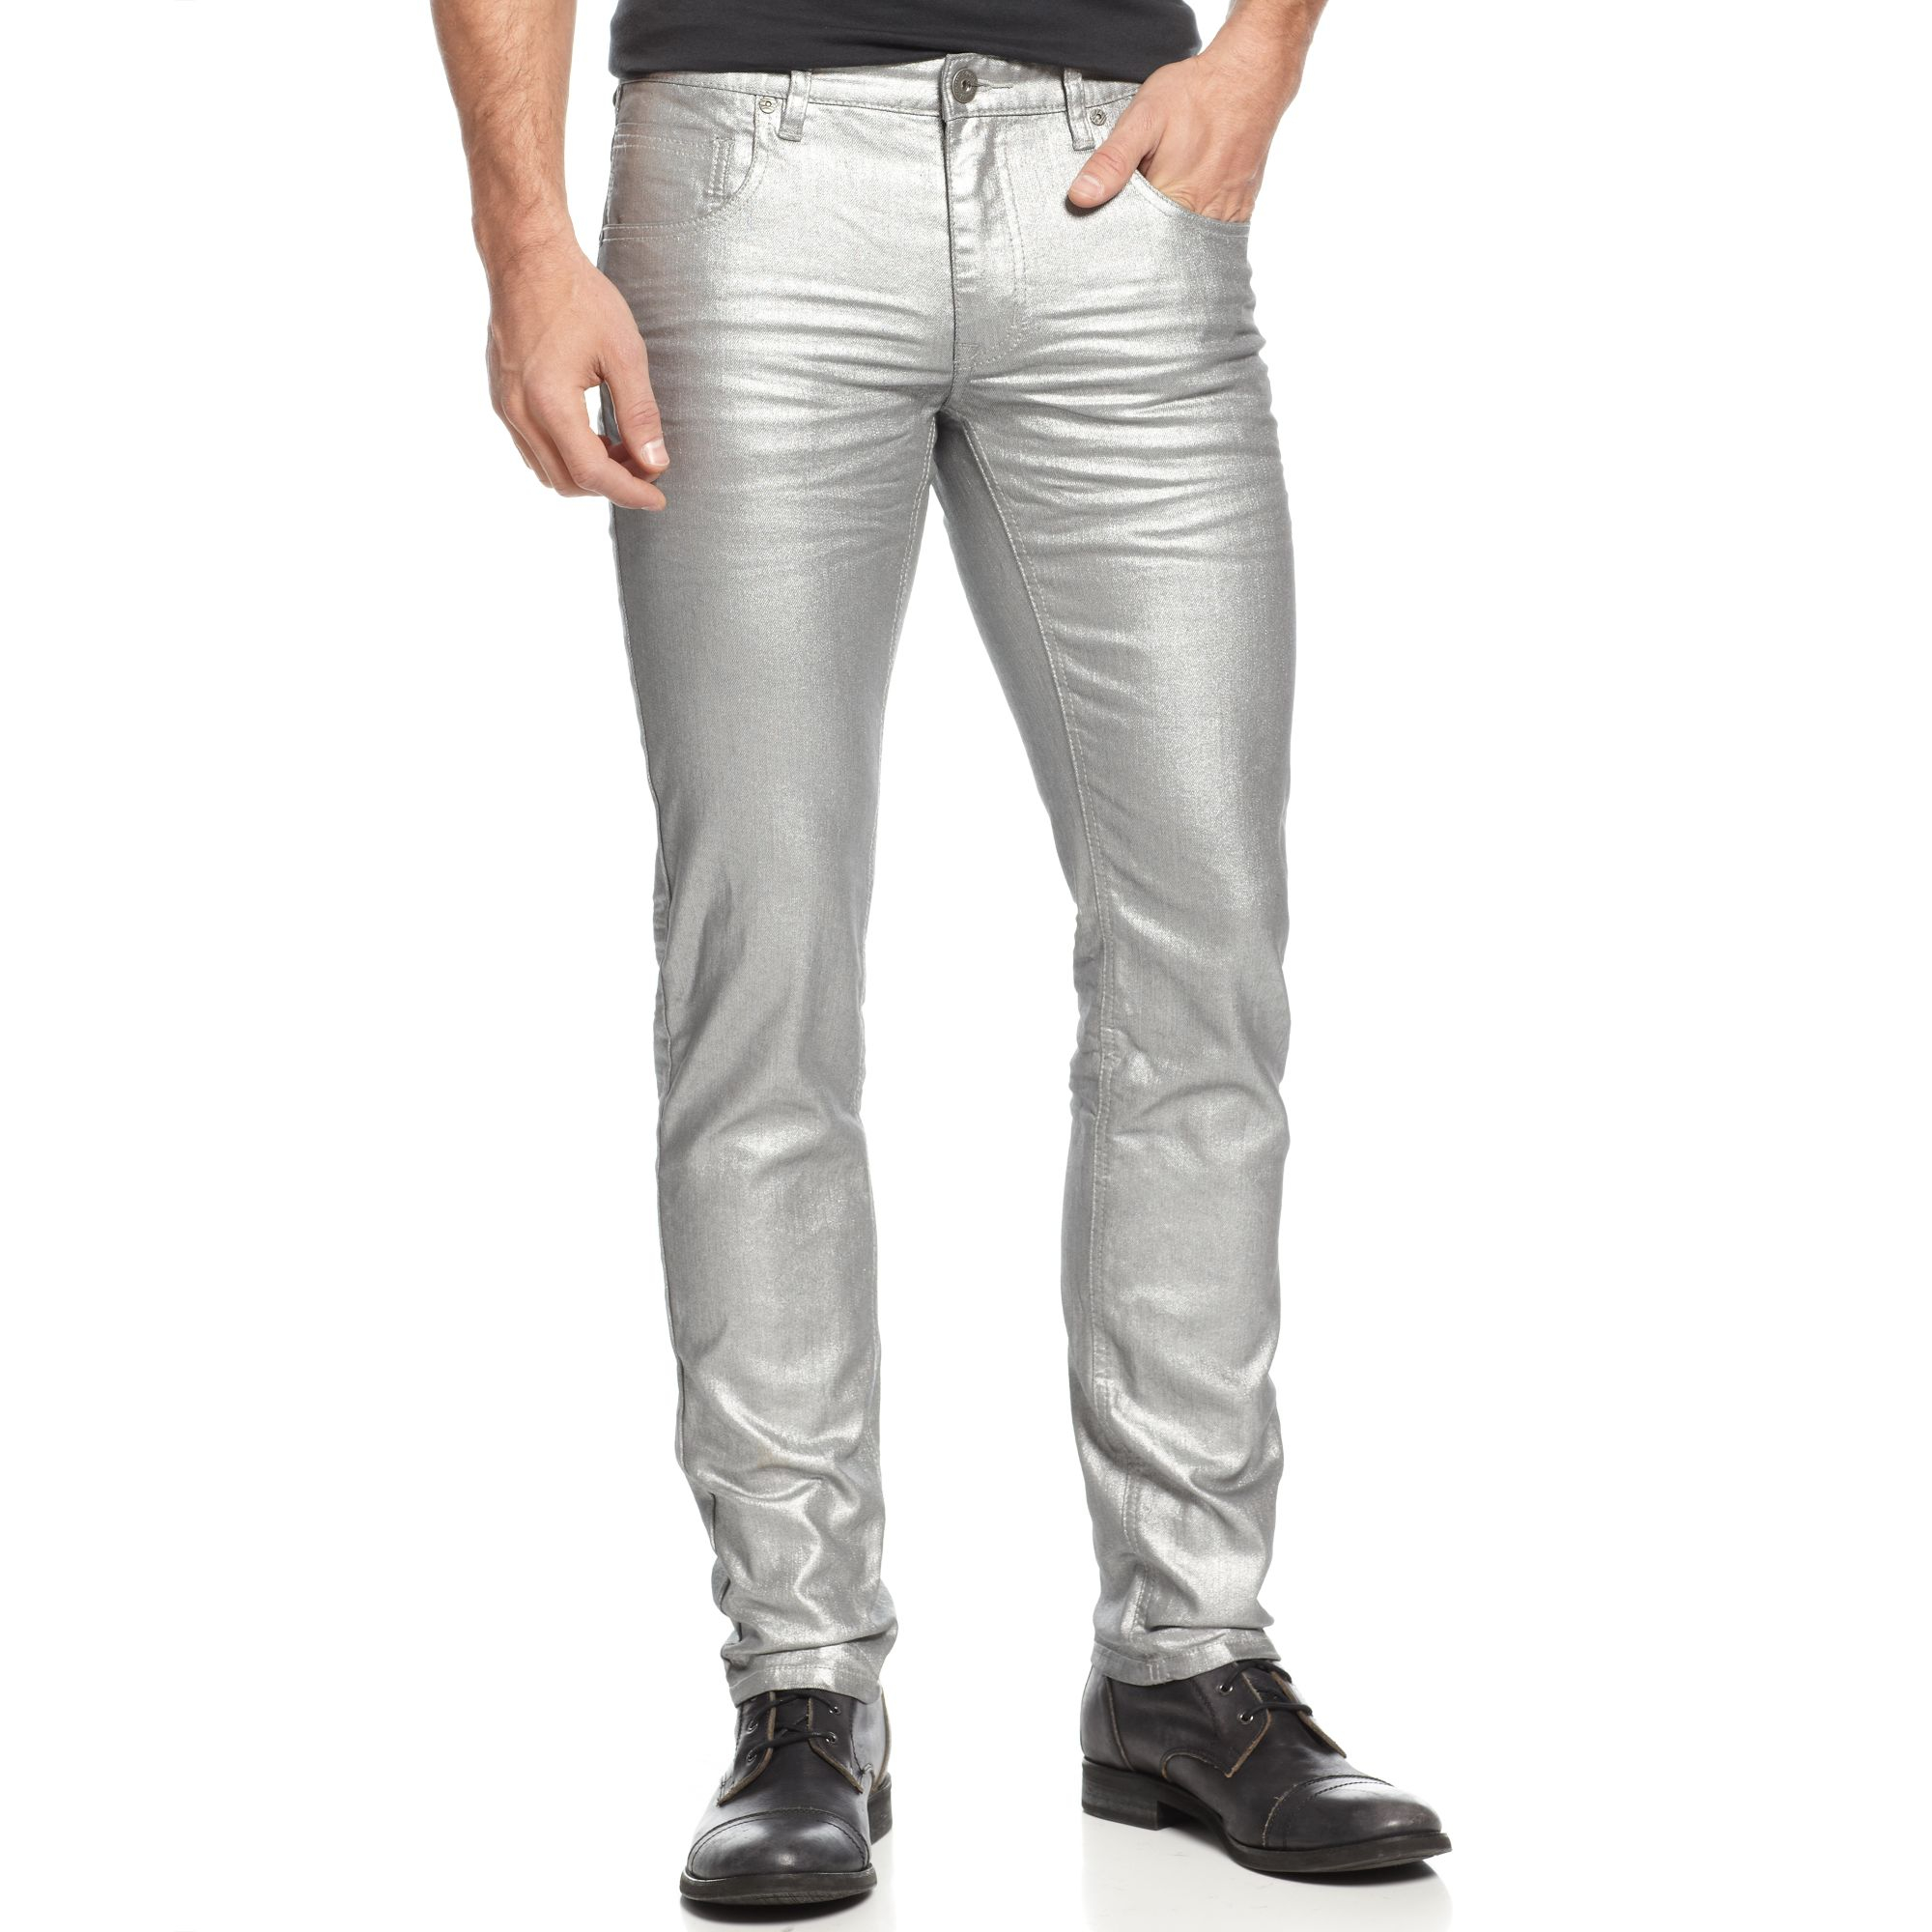 Shop for Silver Jeans Co. Men's Clothing & Apparel | Dillard's at hitmgd.tk Visit hitmgd.tk to find clothing, accessories, shoes, cosmetics & more. The Style of Your Life.